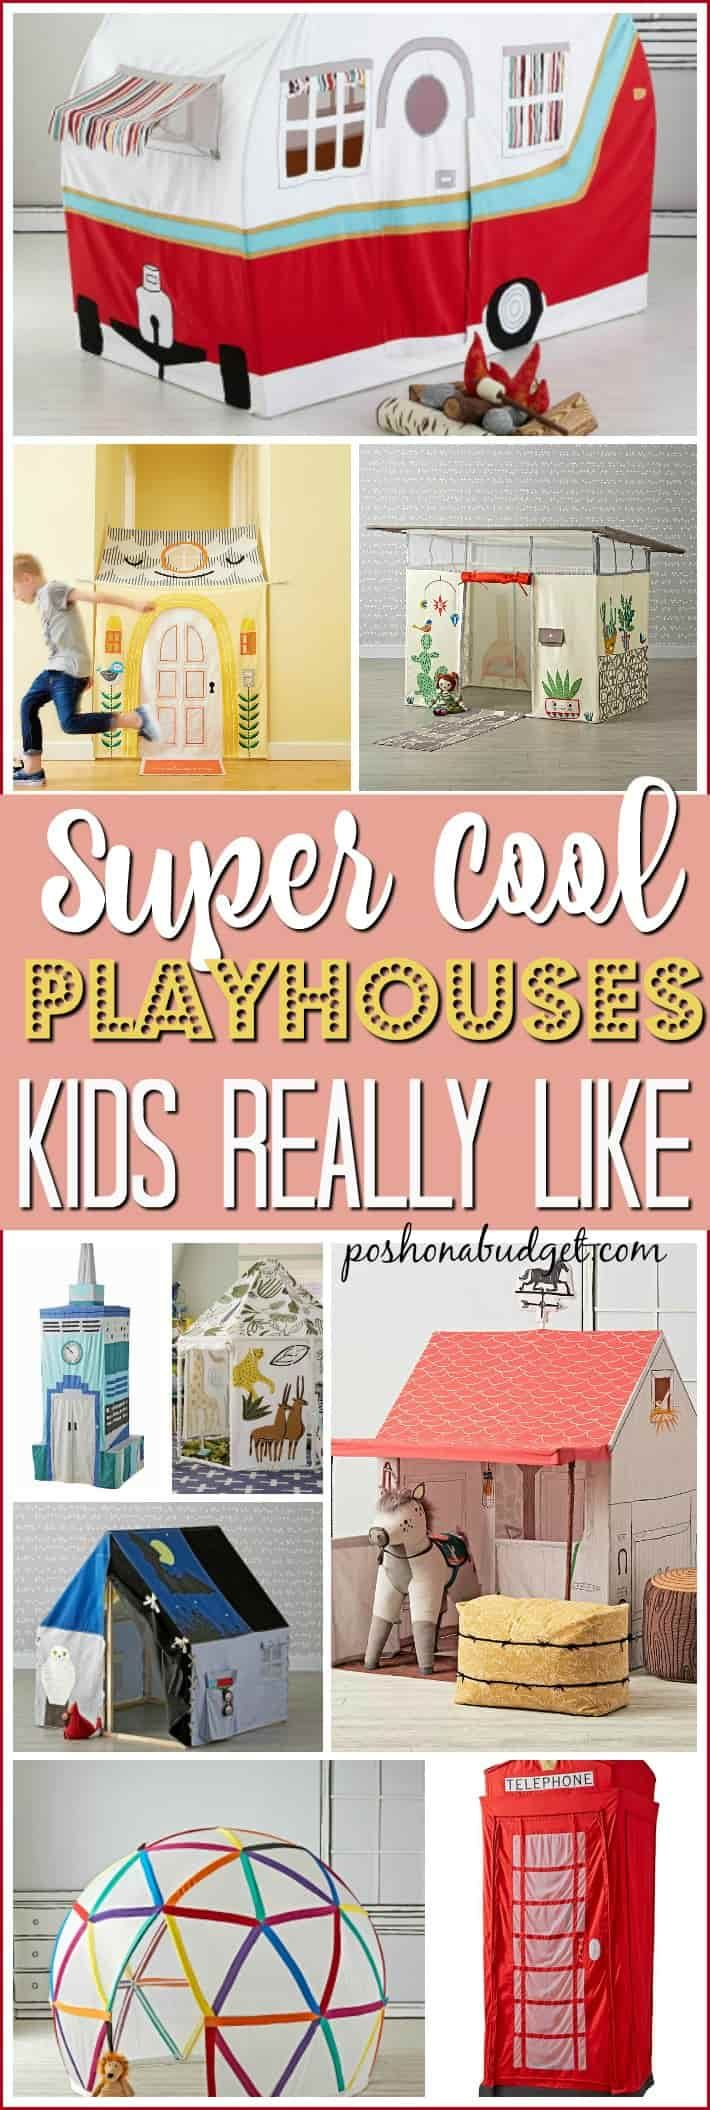 Super Cool Playhouses Kids Really Like!!! http://poshonabudget.com/2017/04/super-cool-playhouses-kids-really-like.html via @poshonabudget